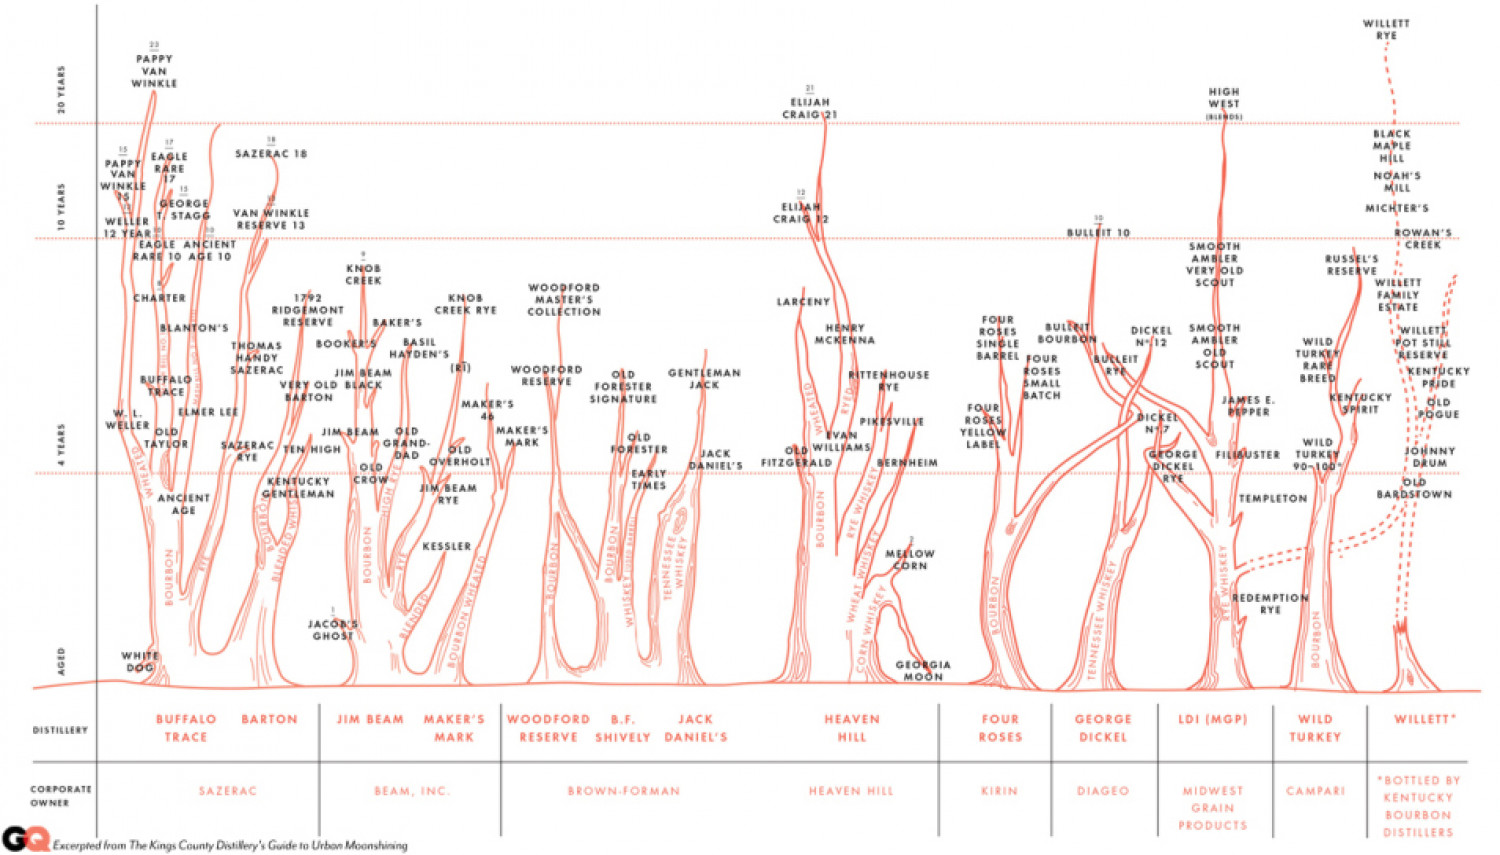 Bourbon Family Tree Infographic